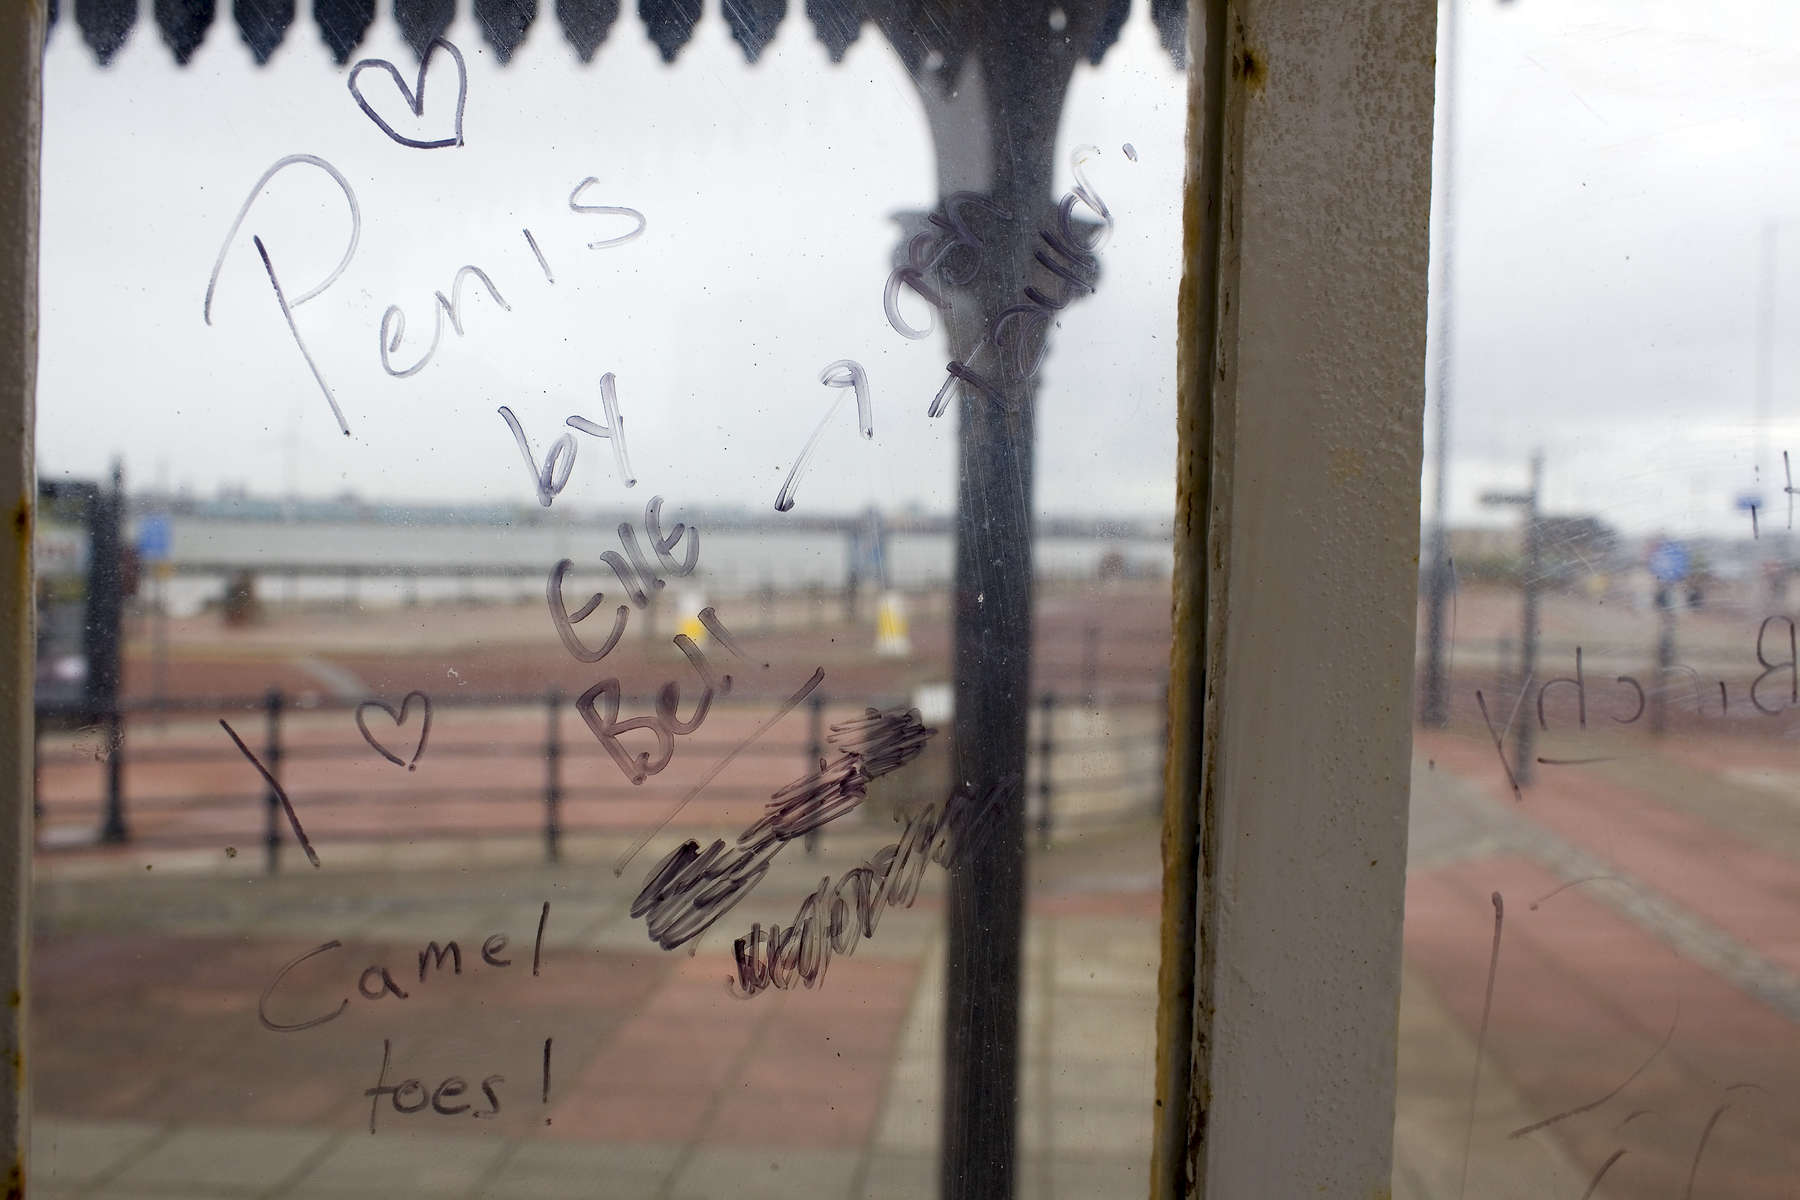 Graffiti penned on the glass of a weather shelter on New Brighton promenade.In 1986, world famous photographer Martin Parr published his book 'The Last Resort,' a set of photographs taken over three seasons 1983-85 in the Liverpool suburb of New Brighton. 25 years later, photographer and Parr fan, Peter Dench, went on a Bank Holiday pilgrimage to New Brigthon to walk in Parr's footsteps and document what has changed or remained the same in the seaside town.